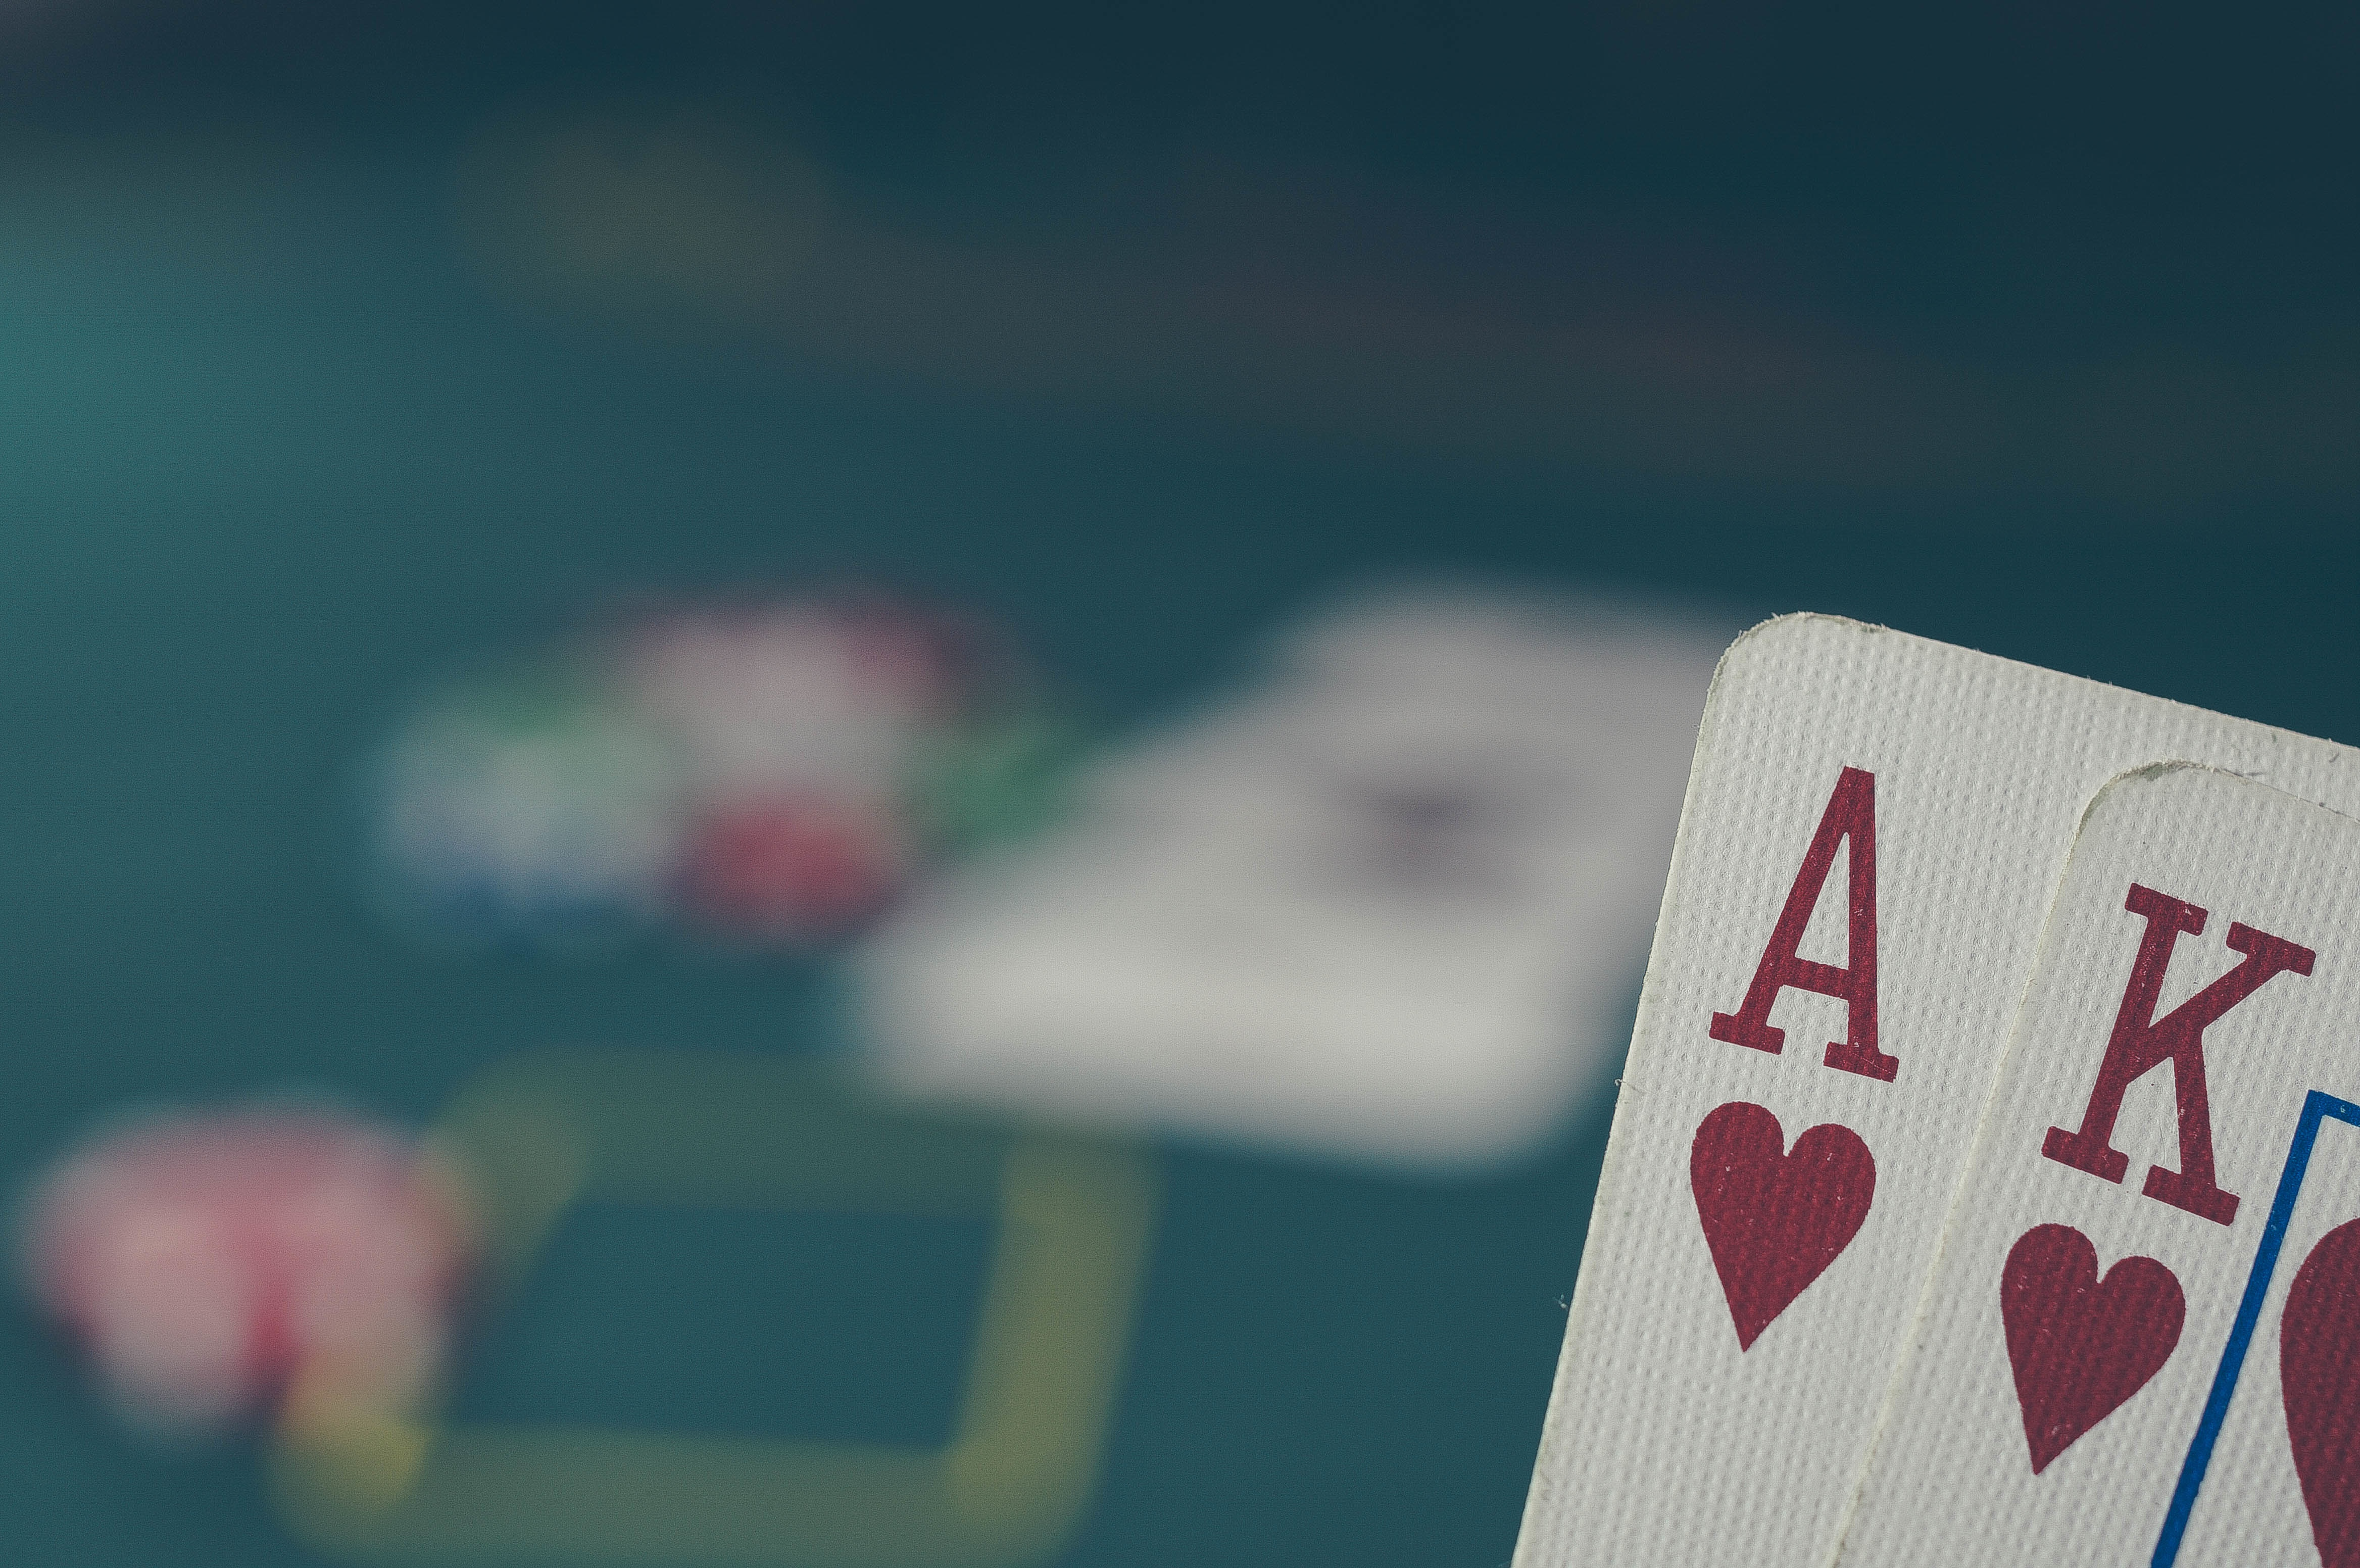 Casino, Ace, Cards, Gambling, Game, HQ Photo